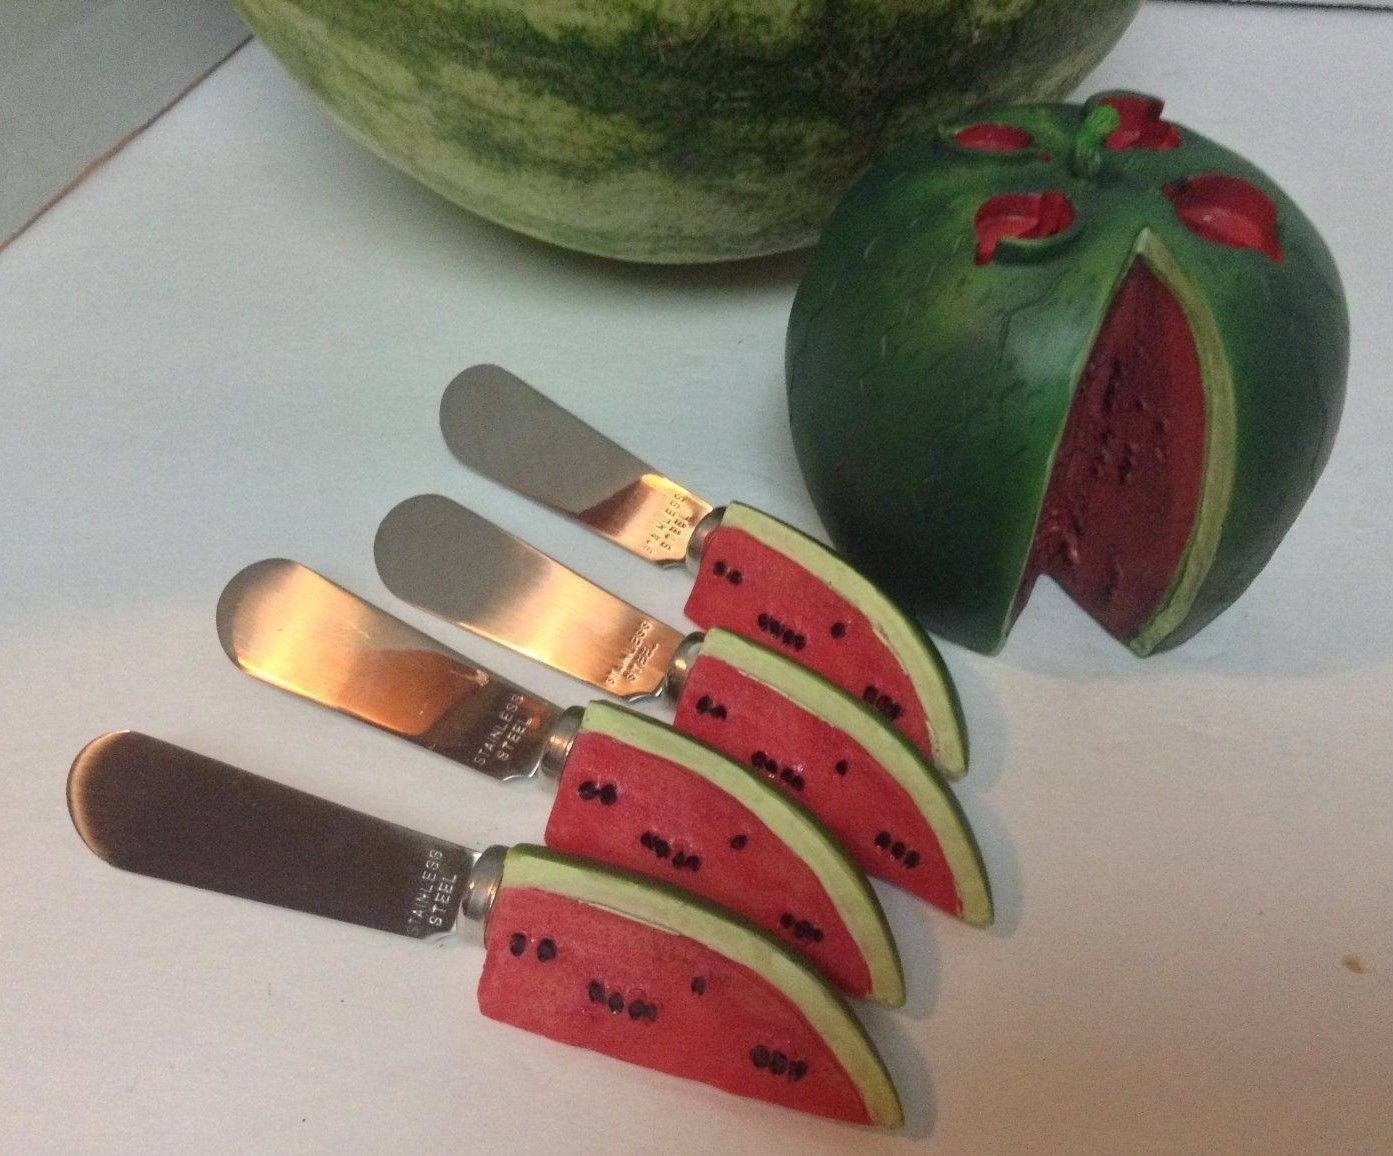 Hostess Watermelon Knife Set & Holder Stainless Steel NIB